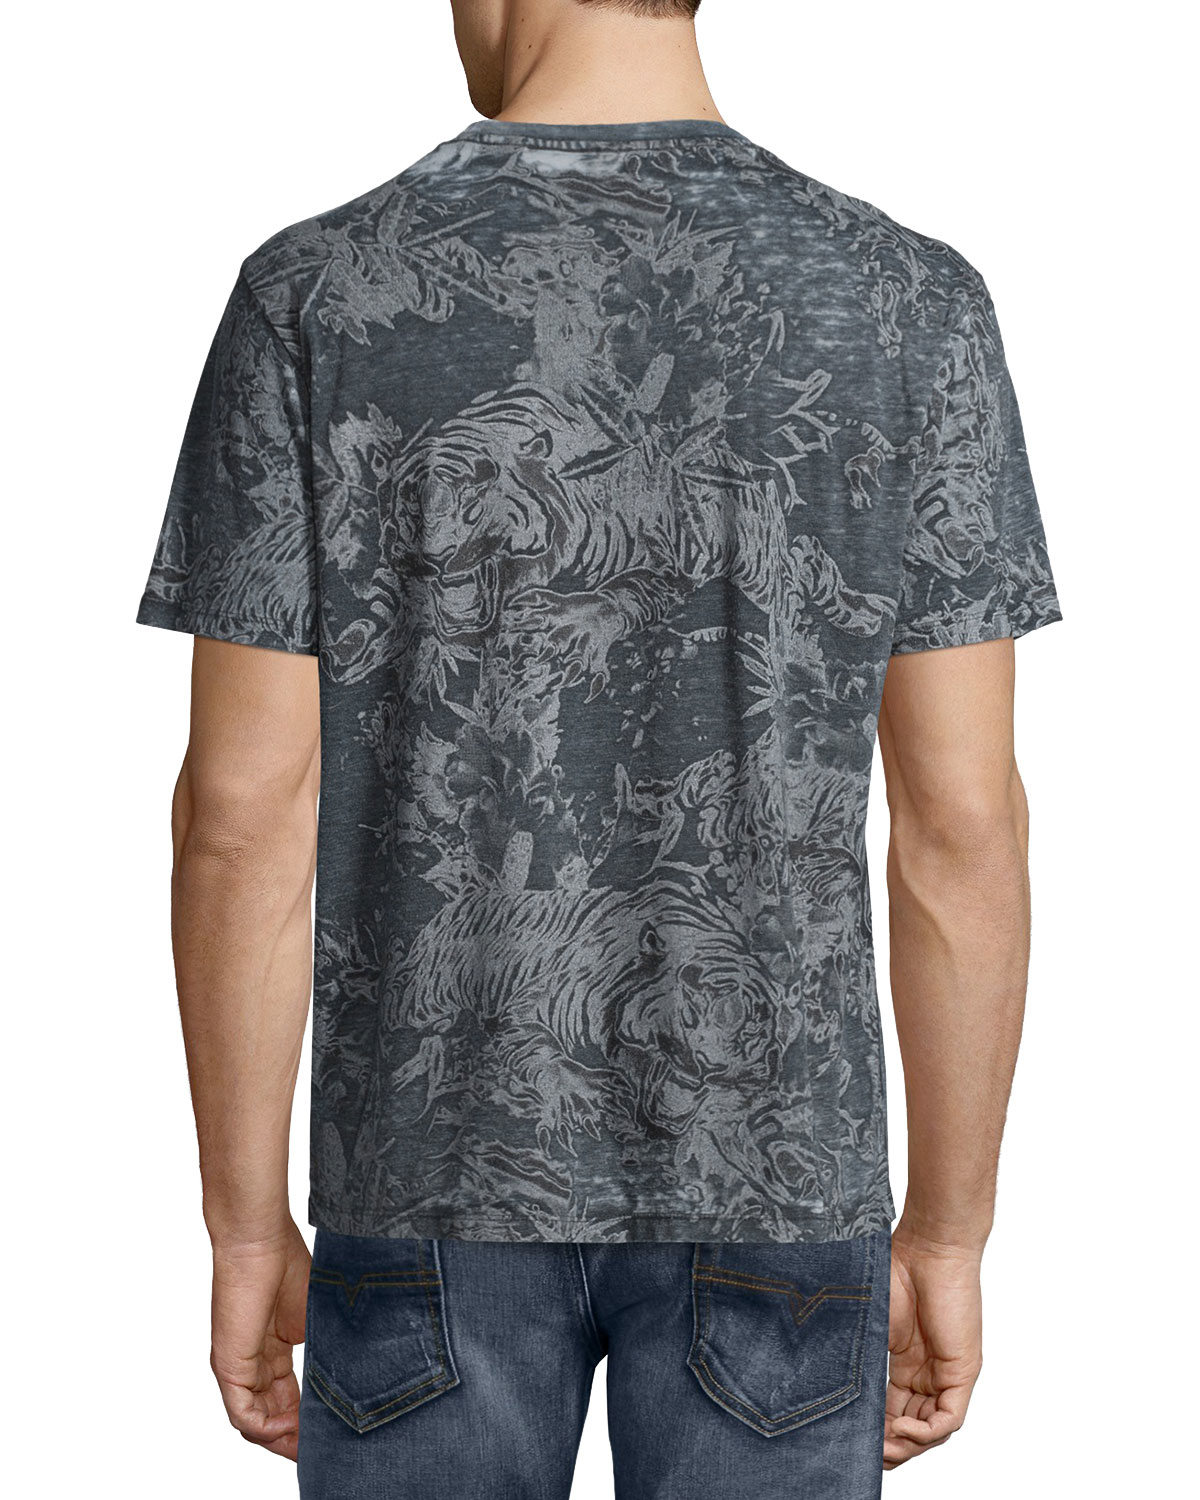 Diesel faded leaf print short sleeve t shirt in black for for Faded color t shirts